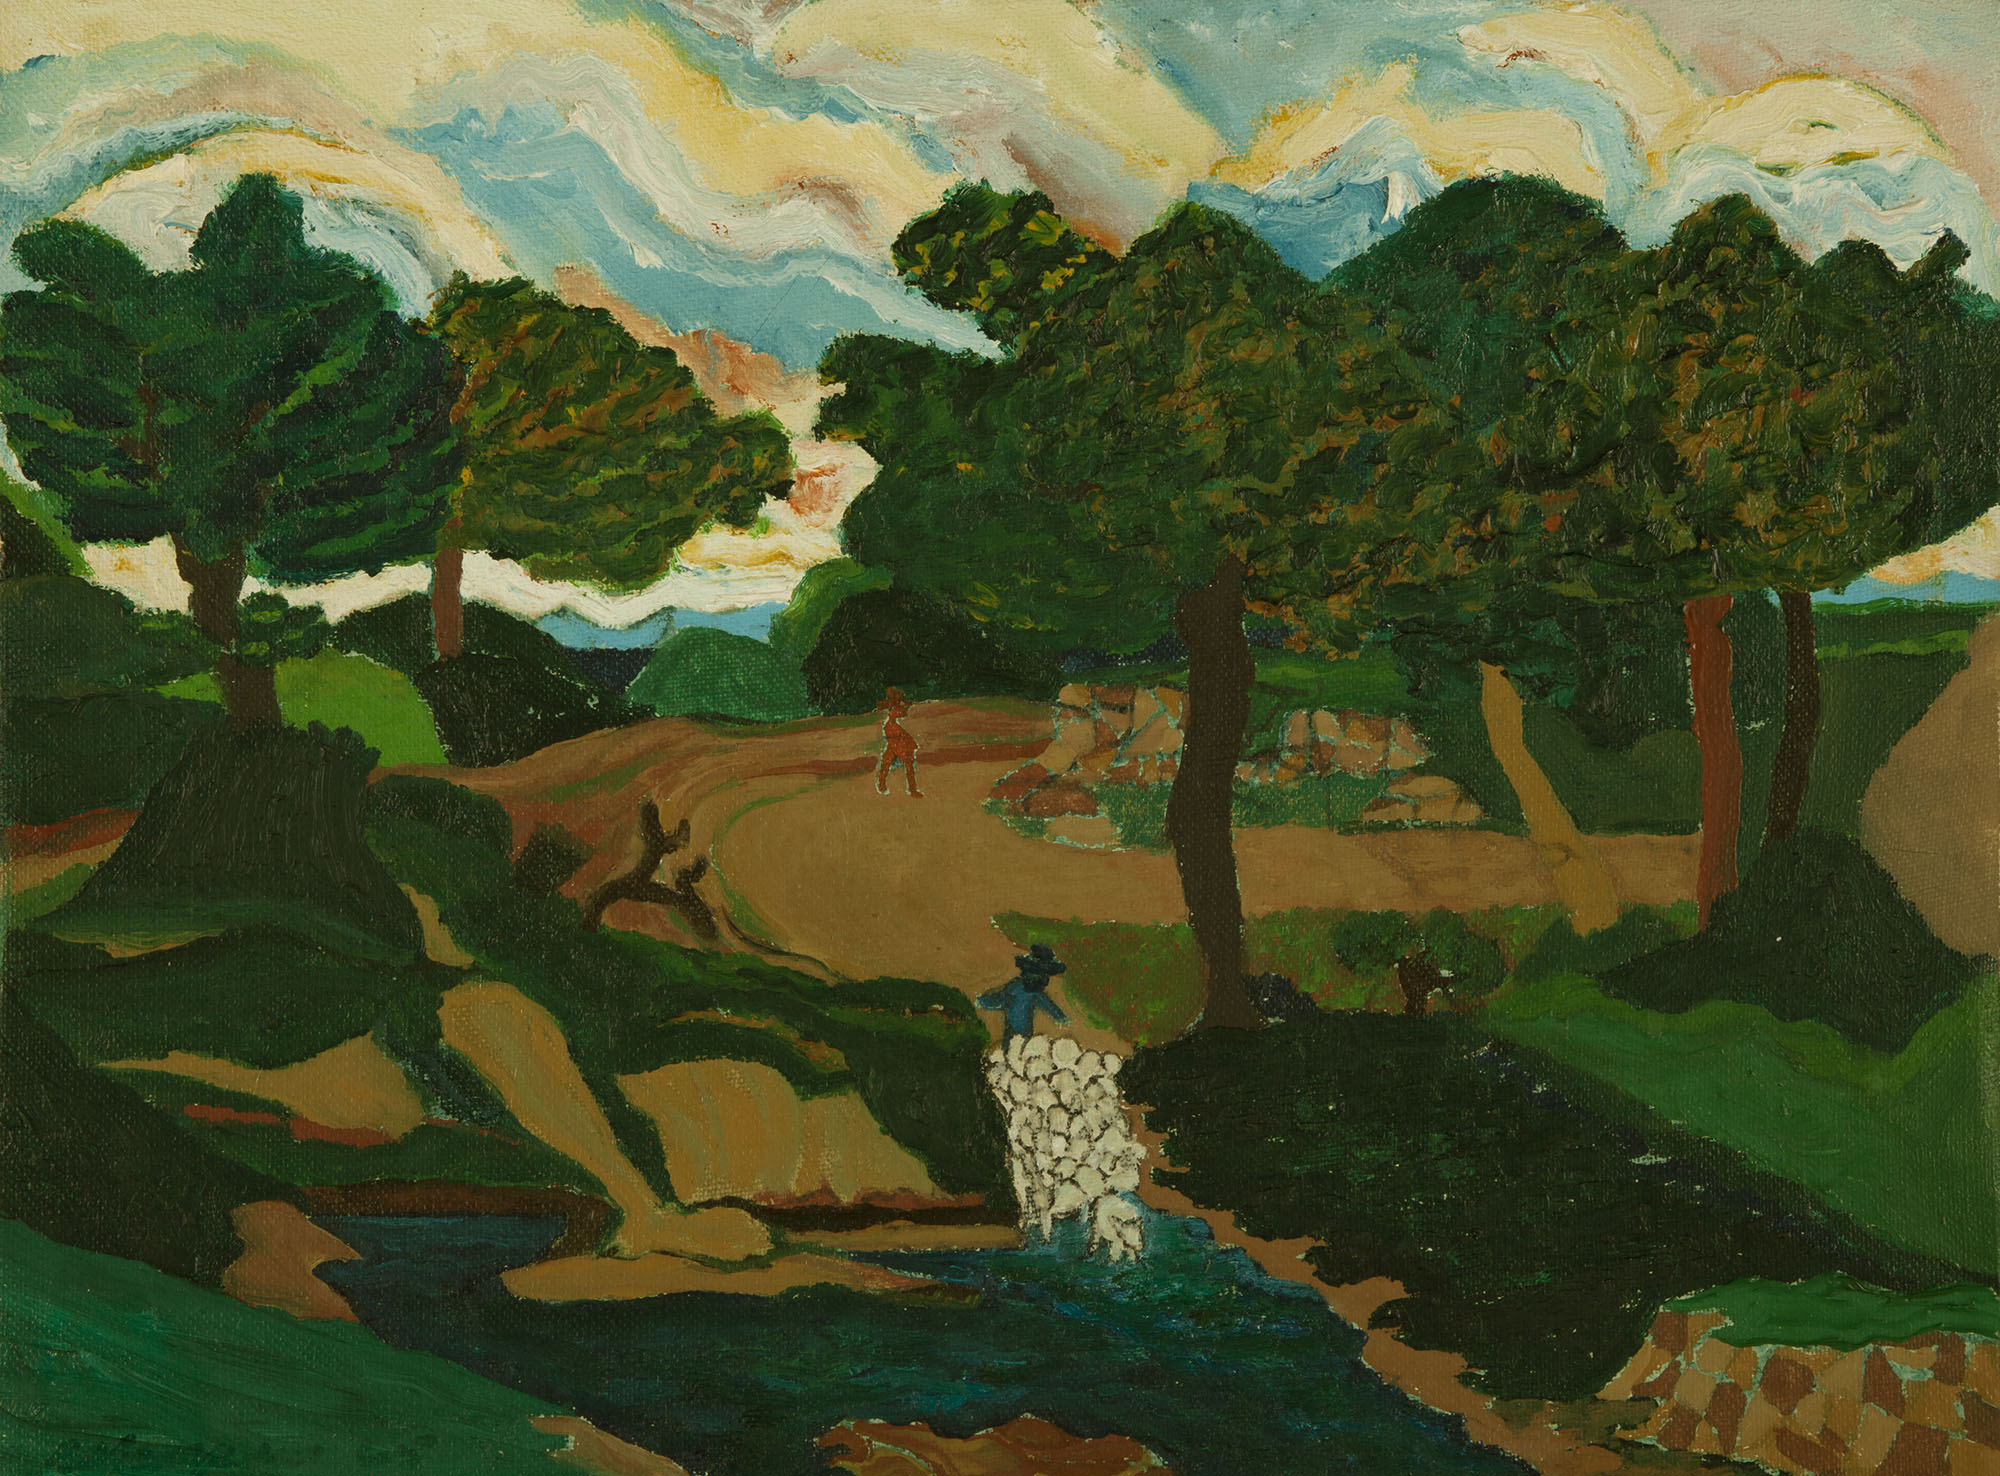 Robert Louis Thompson, Shepherding, 1965. Oil on canvas. Collection of DePaul Art Museum, gift of Samuel and Blanche Koffler, 2012.118